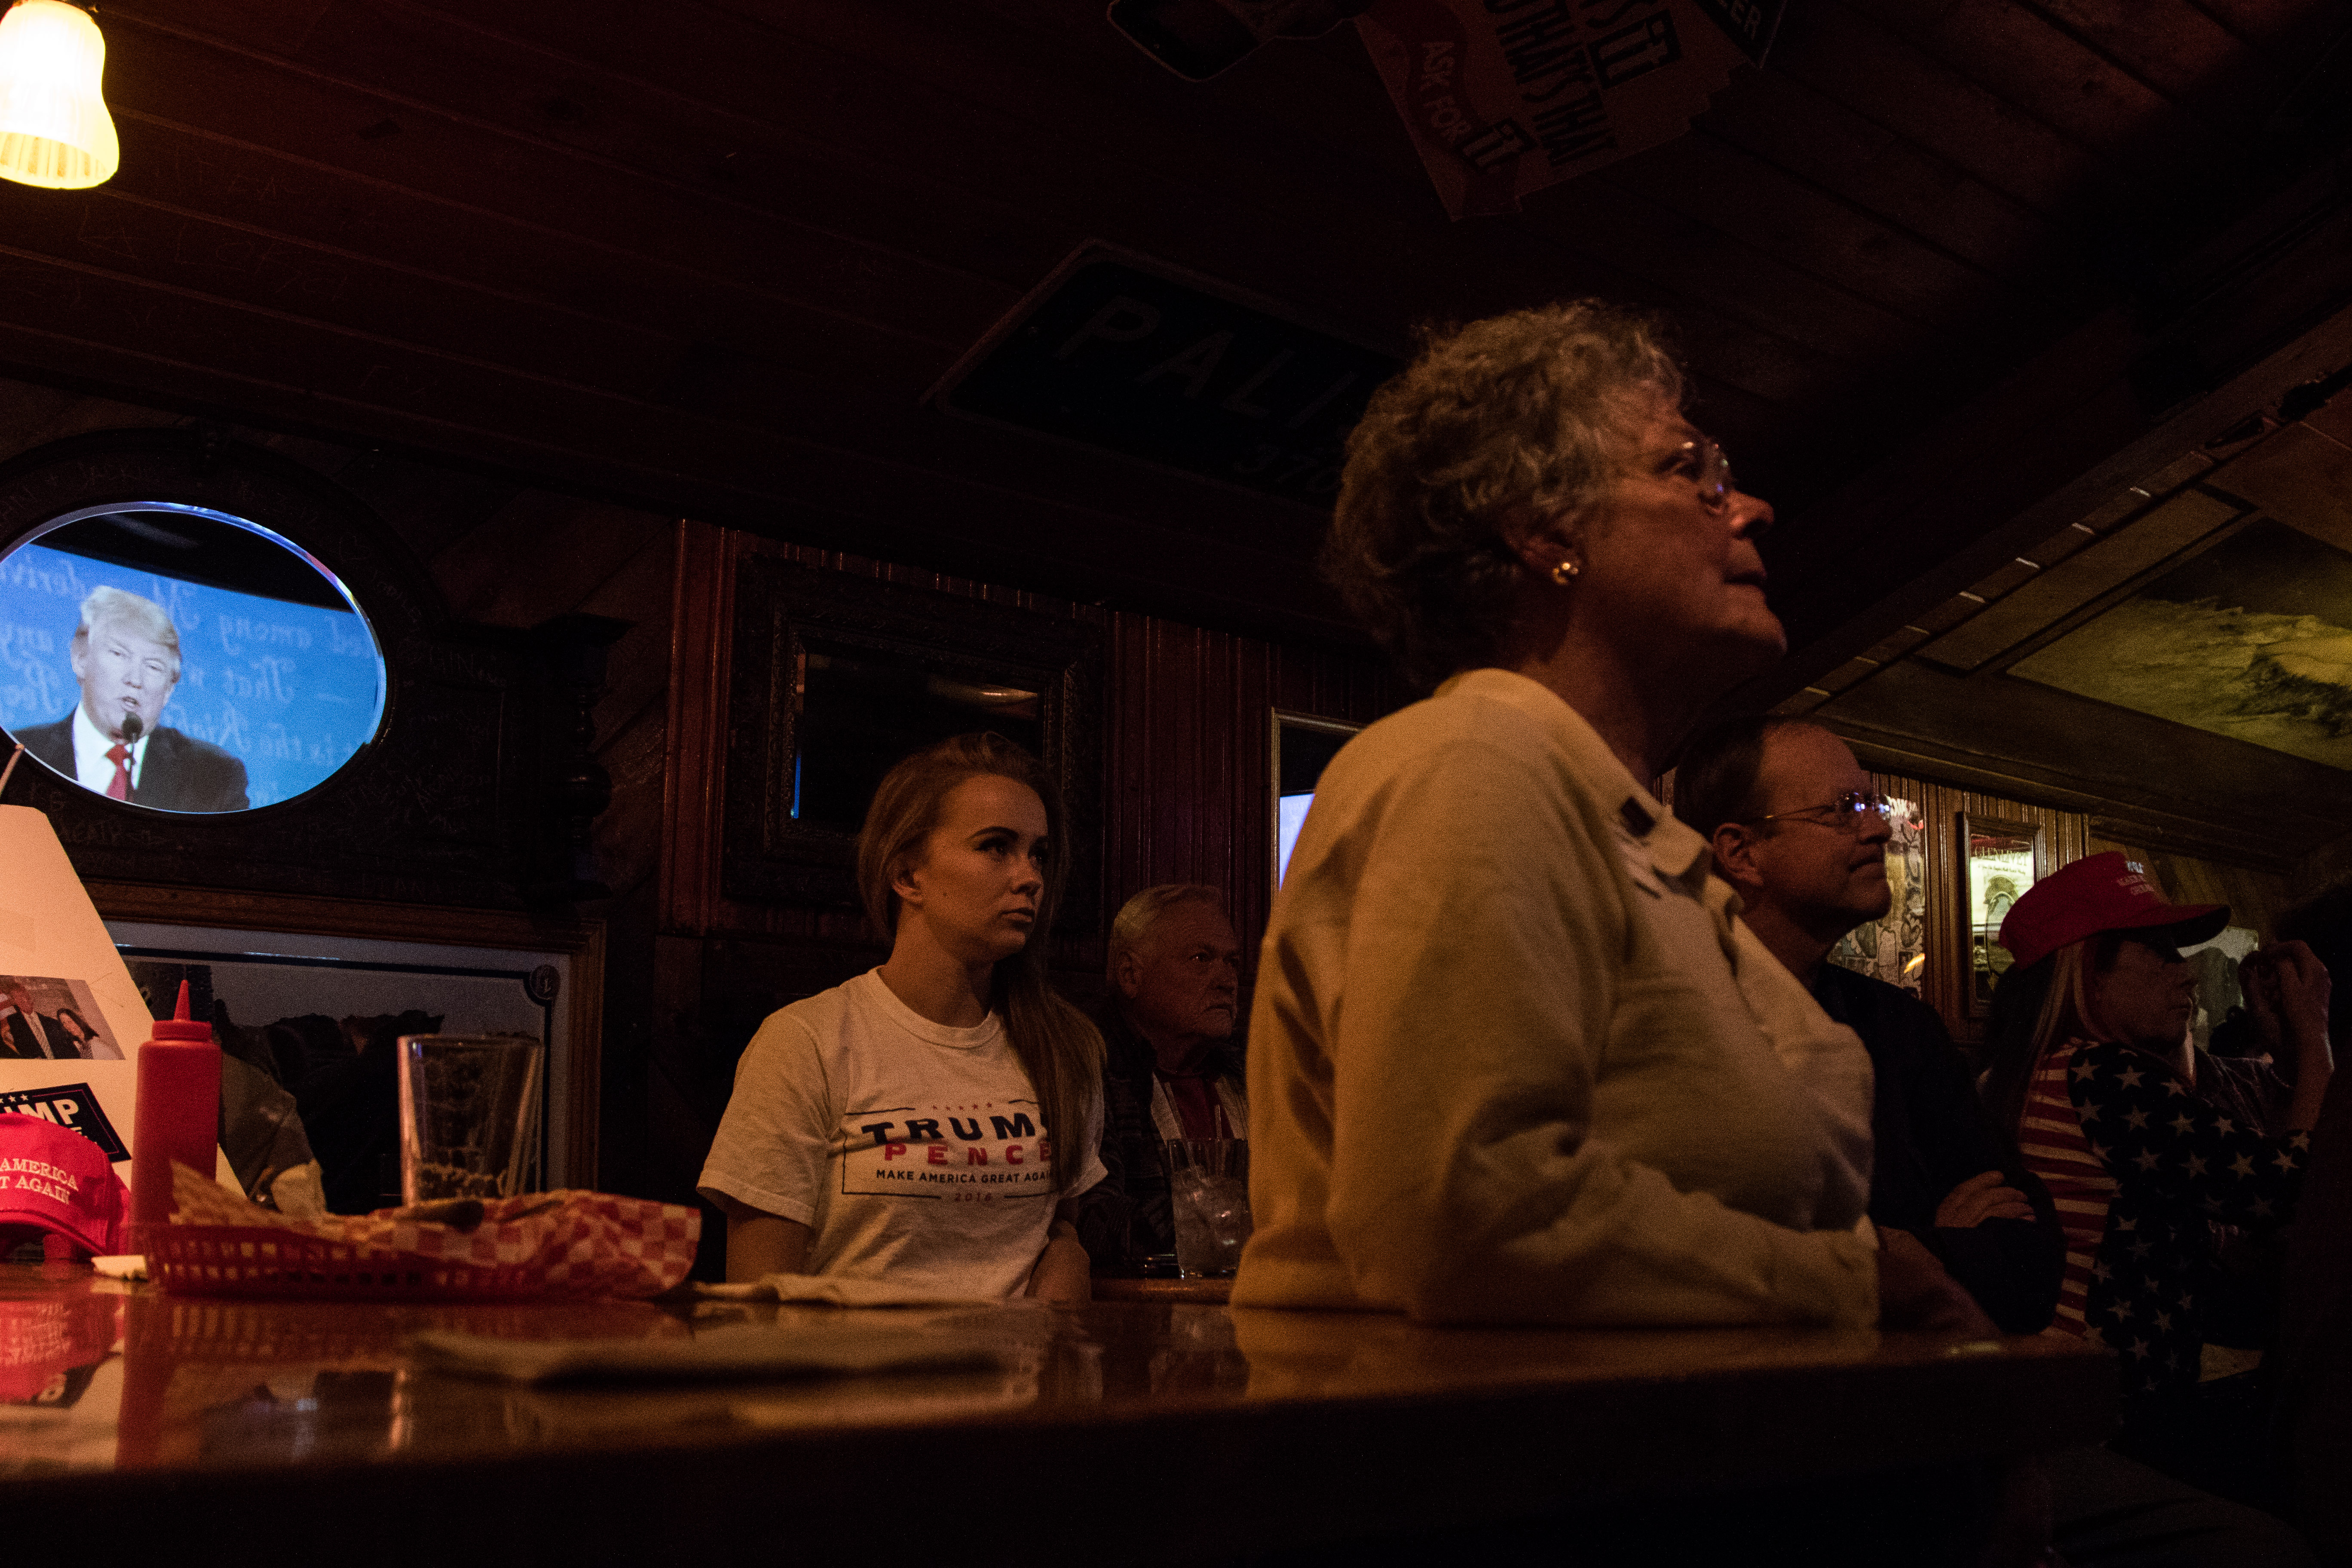 Emily (back left) watched Trump in the final debate in Las Vegas. She is political science graduate and Trump campaign coordinating chairwoman for Boulder county. Only a few students attended the Dark Horse events, but Emily consistently was there in her Trump Pence shirt. (Jackson Barnett/CU Independent)